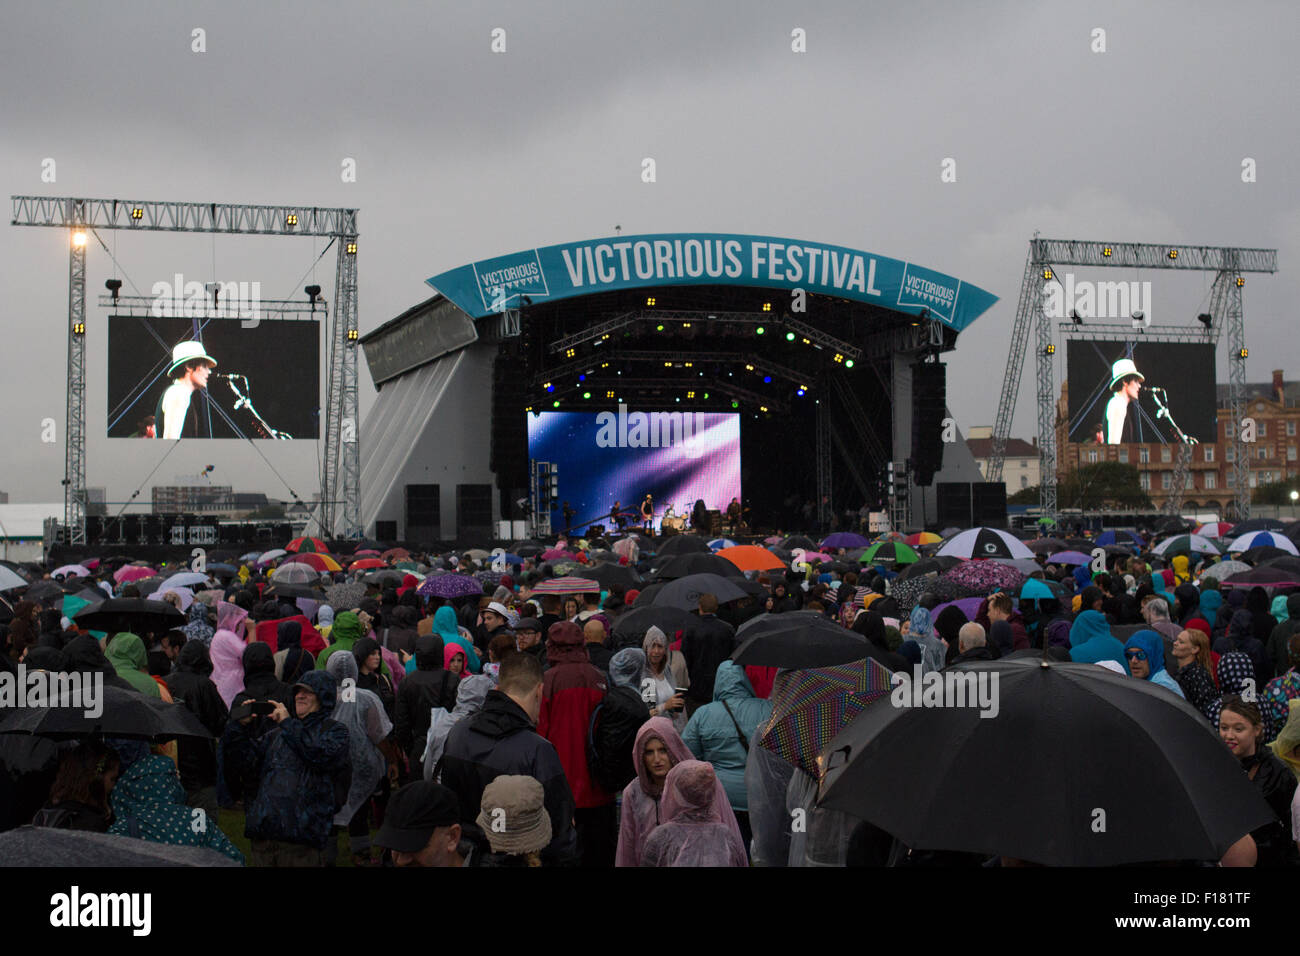 Portsmouth, UK. 29 August 2015. Victorious Festival Saturday wash out. Crowds watch The Fratellis on the main stage, Stock Photo